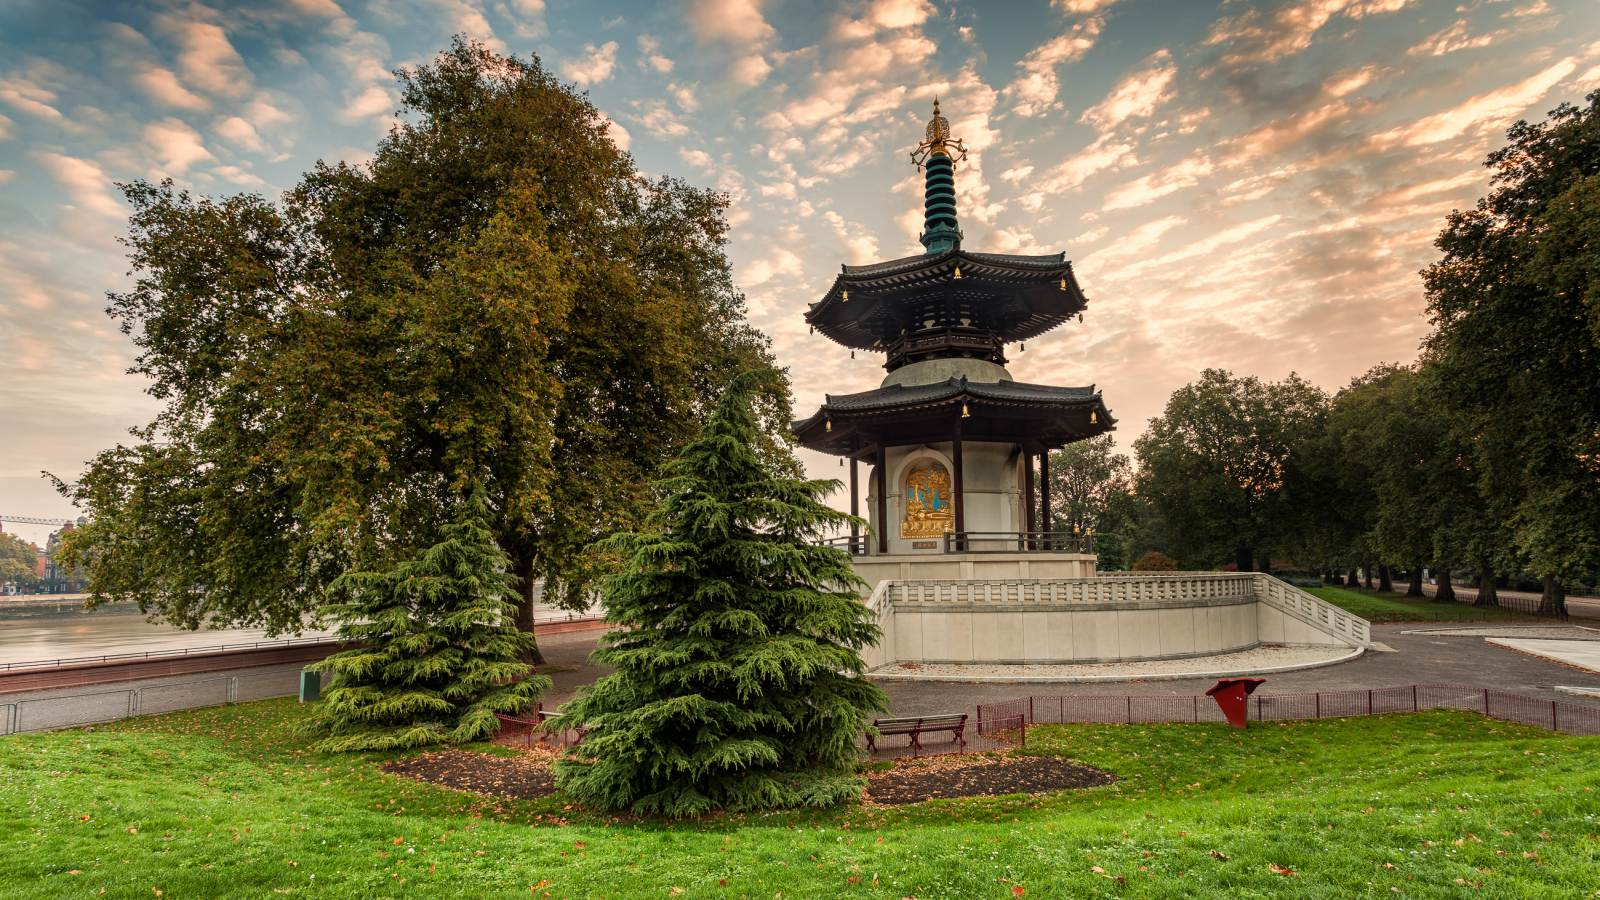 Be a part of Battersea Park Businesses - become a member today